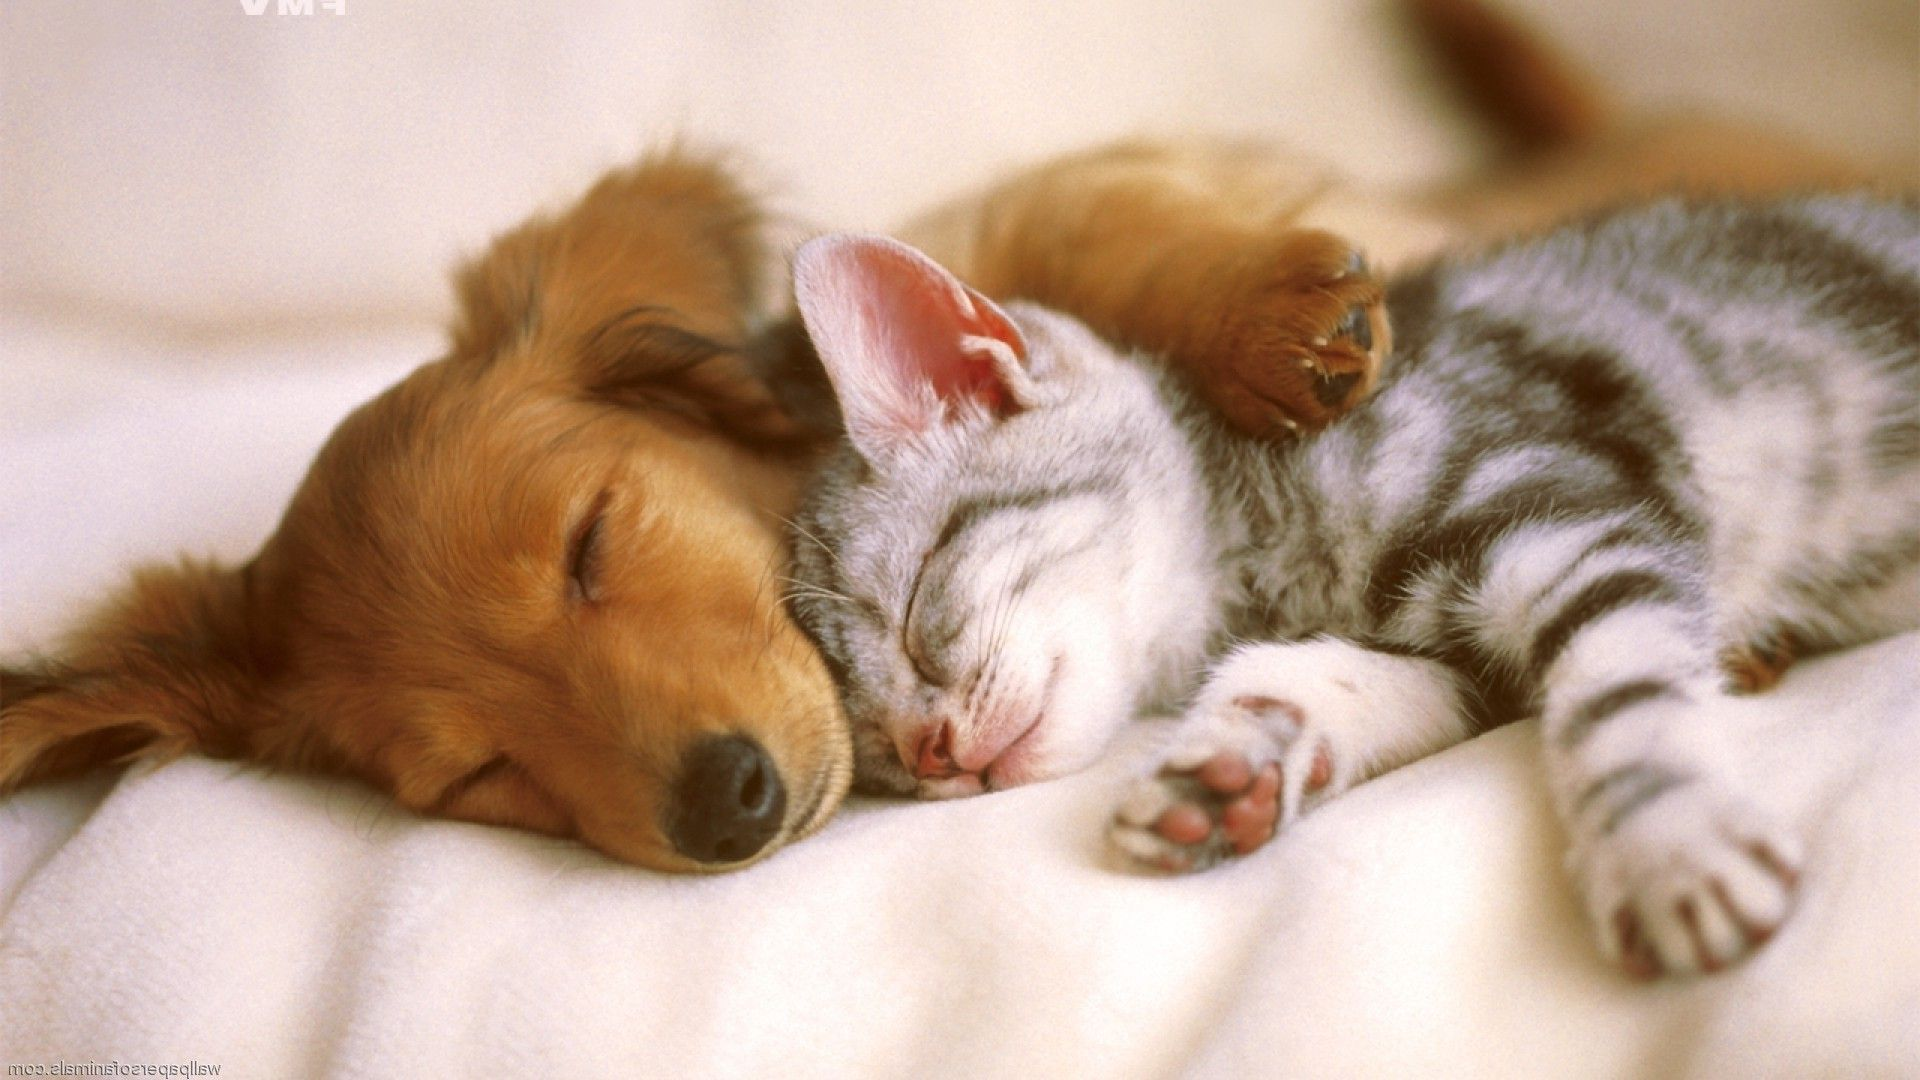 Cats And Dogs Wallpapers Wallpaper Cave Cute Puppies And Kittens Kittens And Puppies Cute Animals Puppies